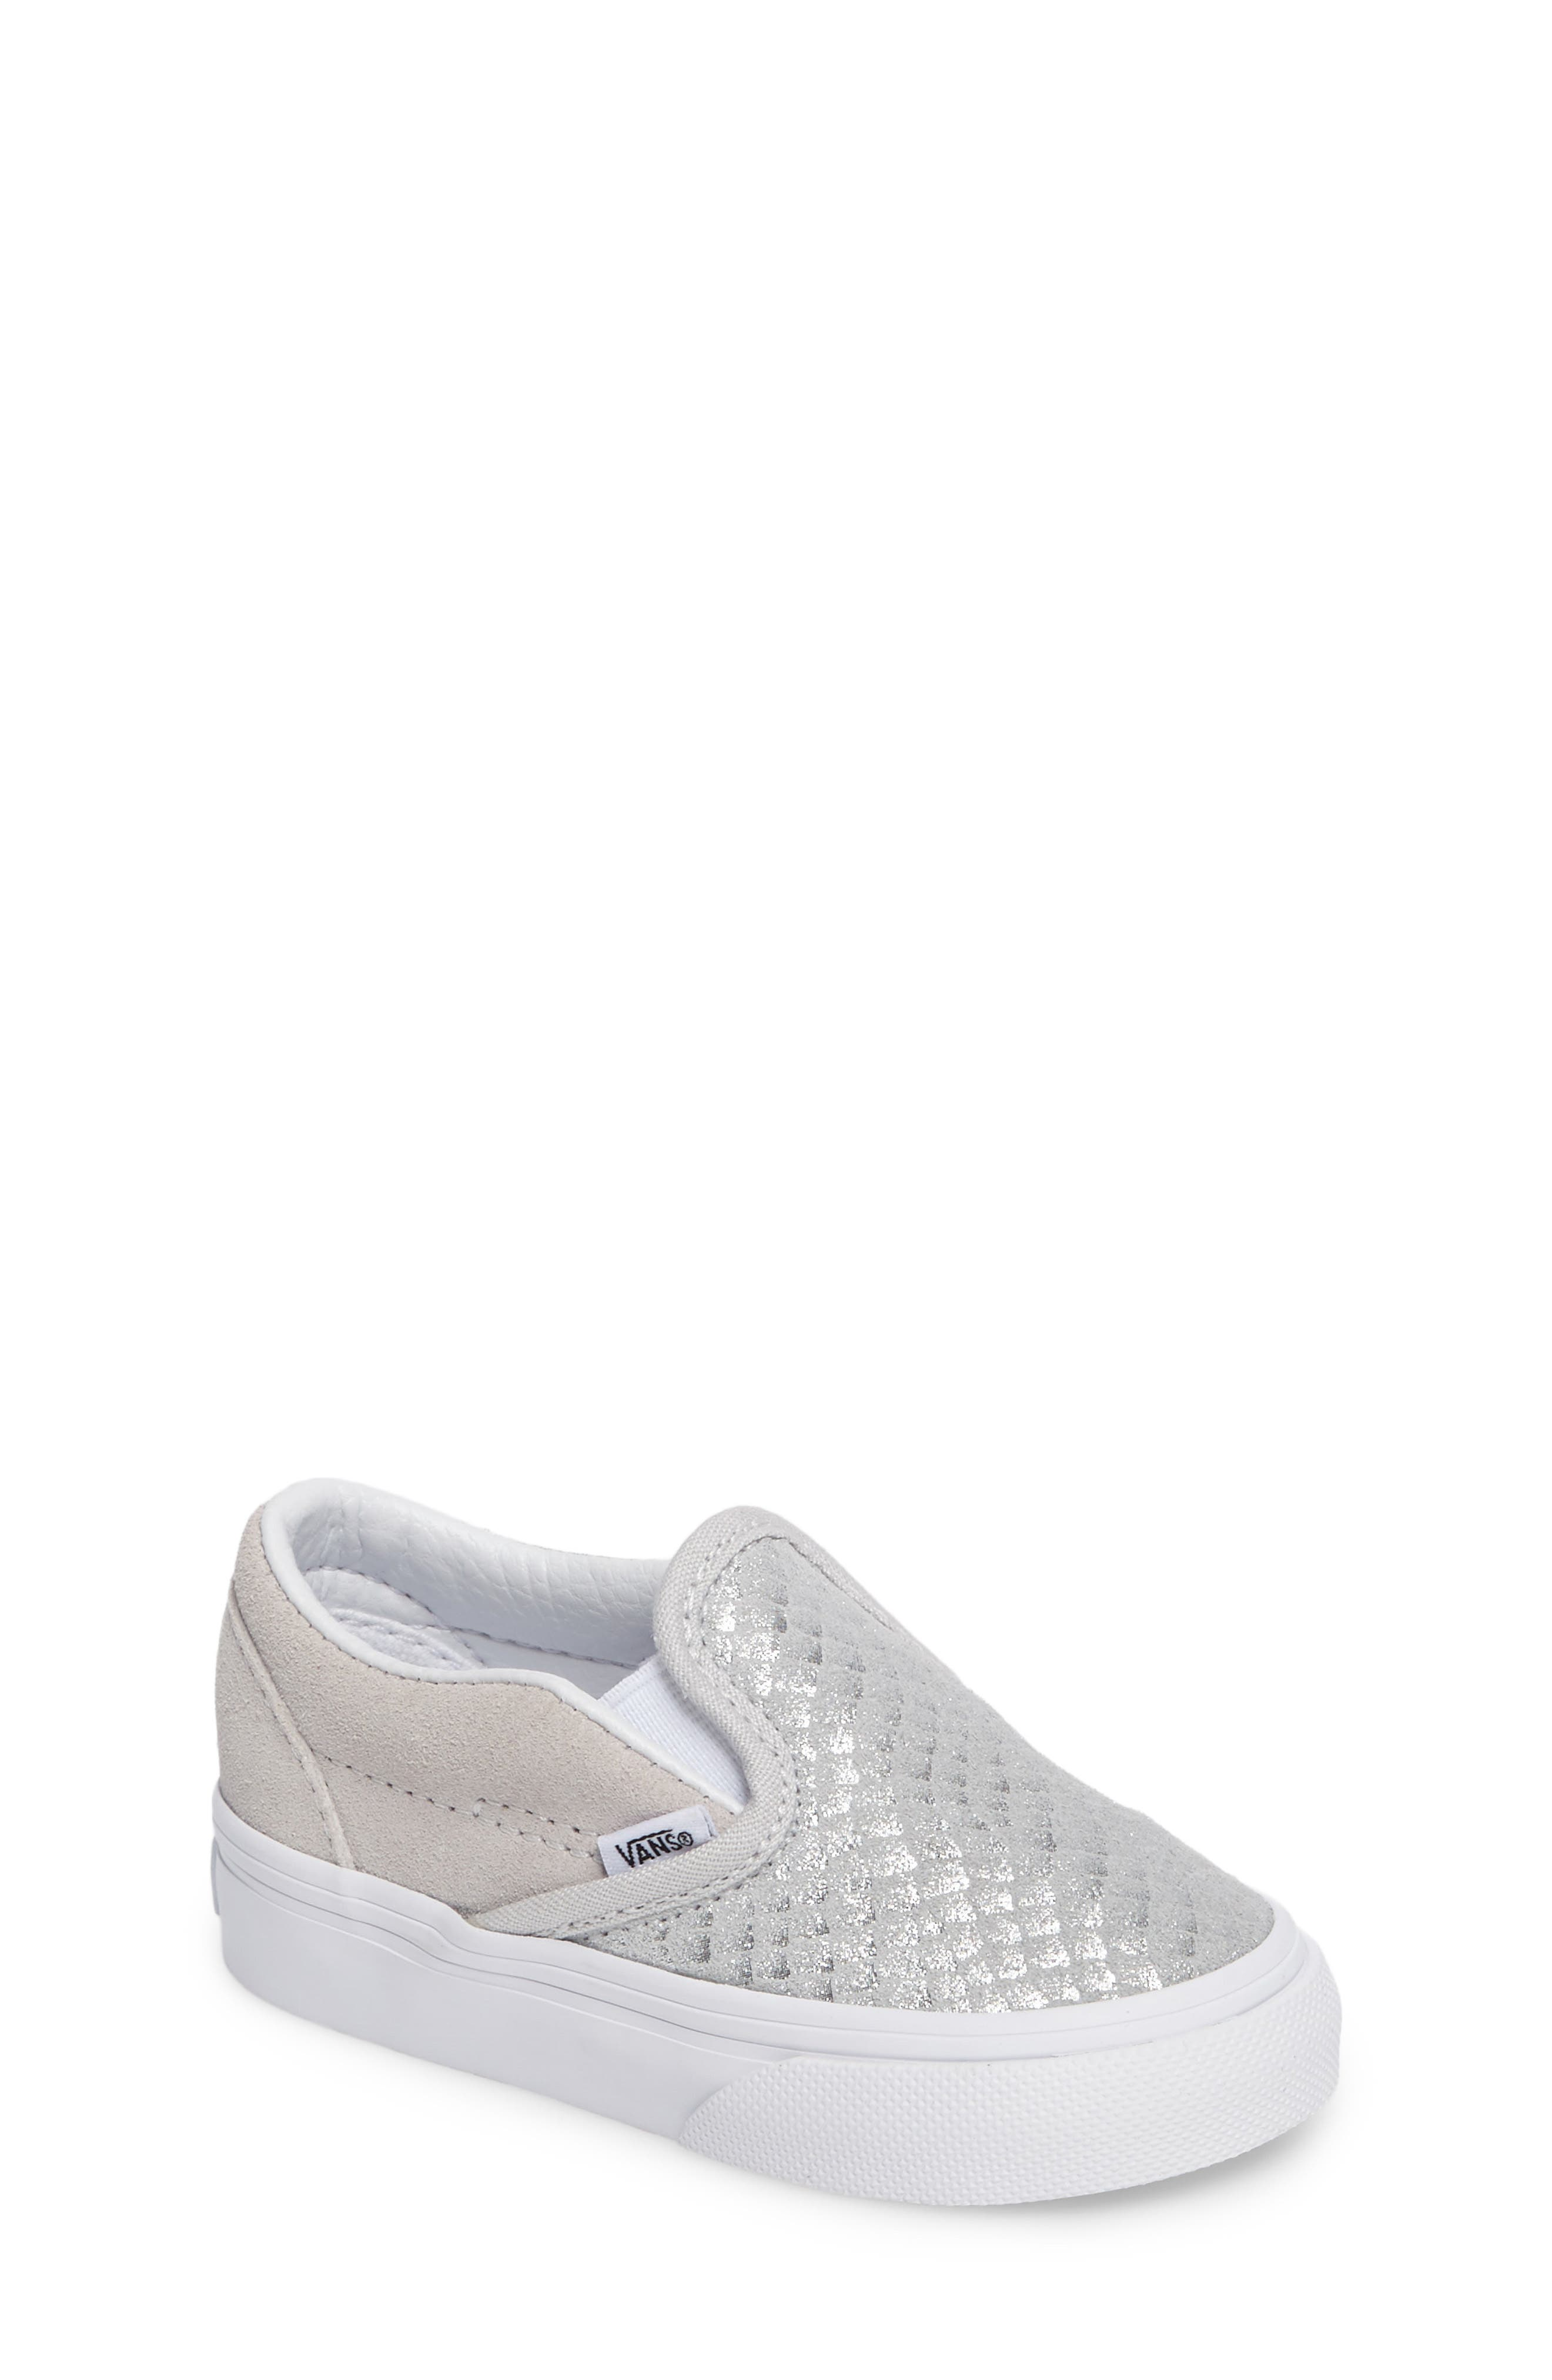 Classic Slip-On Sneaker,                         Main,                         color, 040